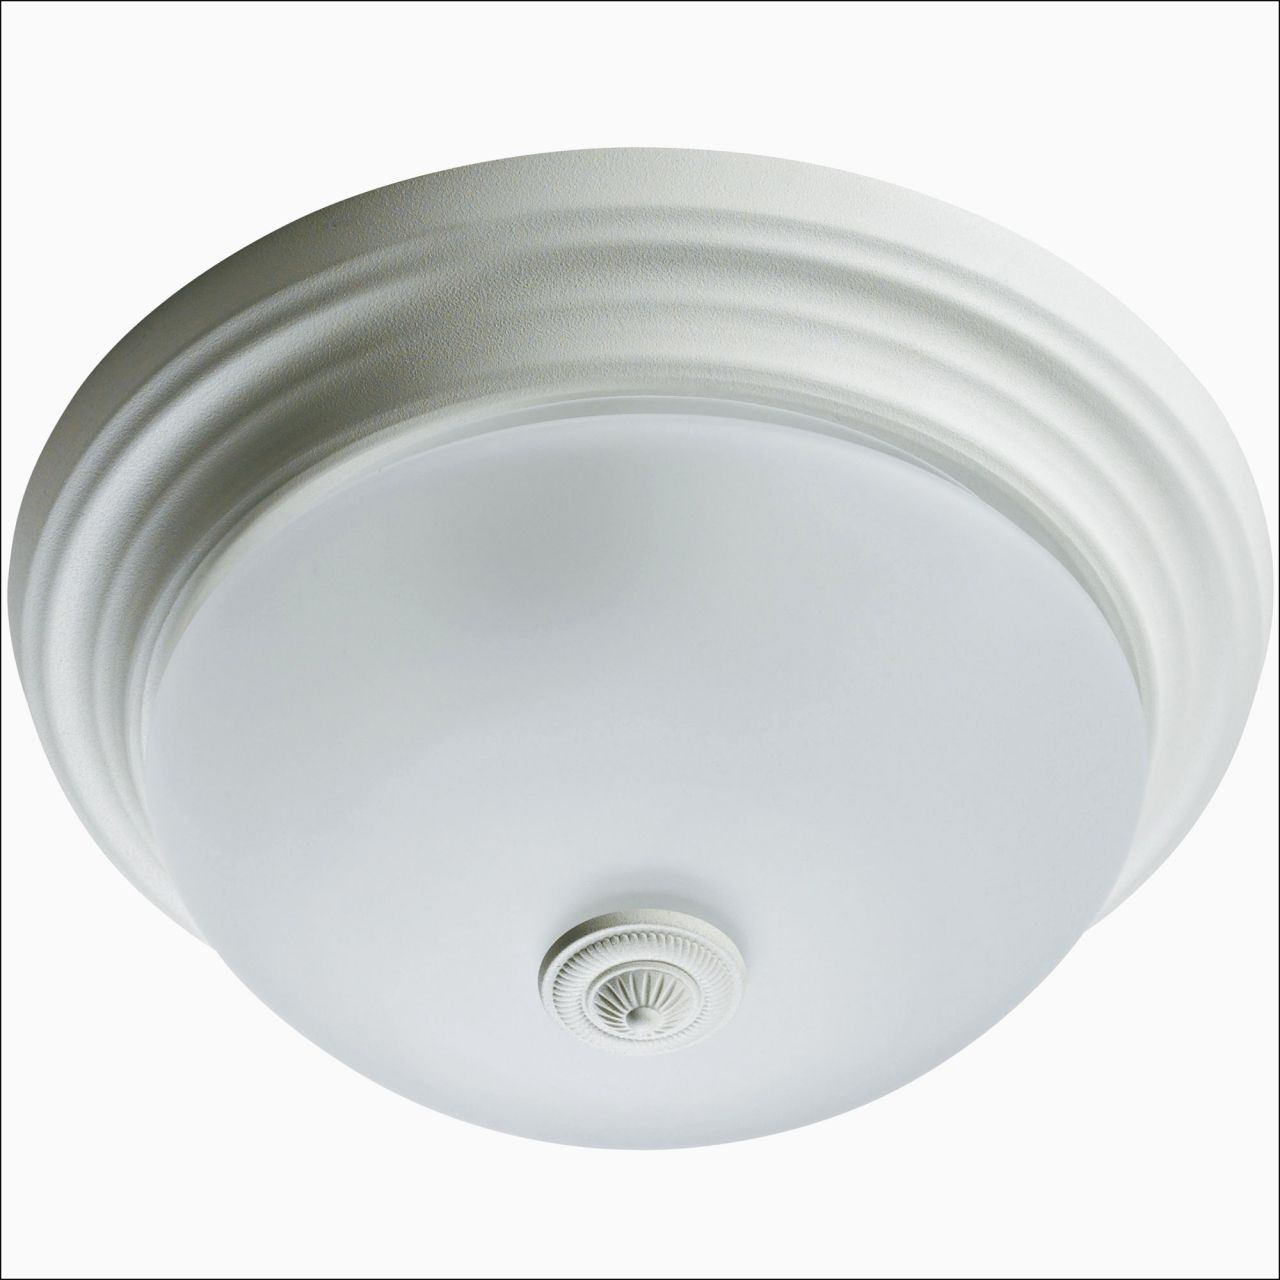 77 Ventless Bathroom Exhaust Fan With Light Check More At Https Www Michelenails Com 77